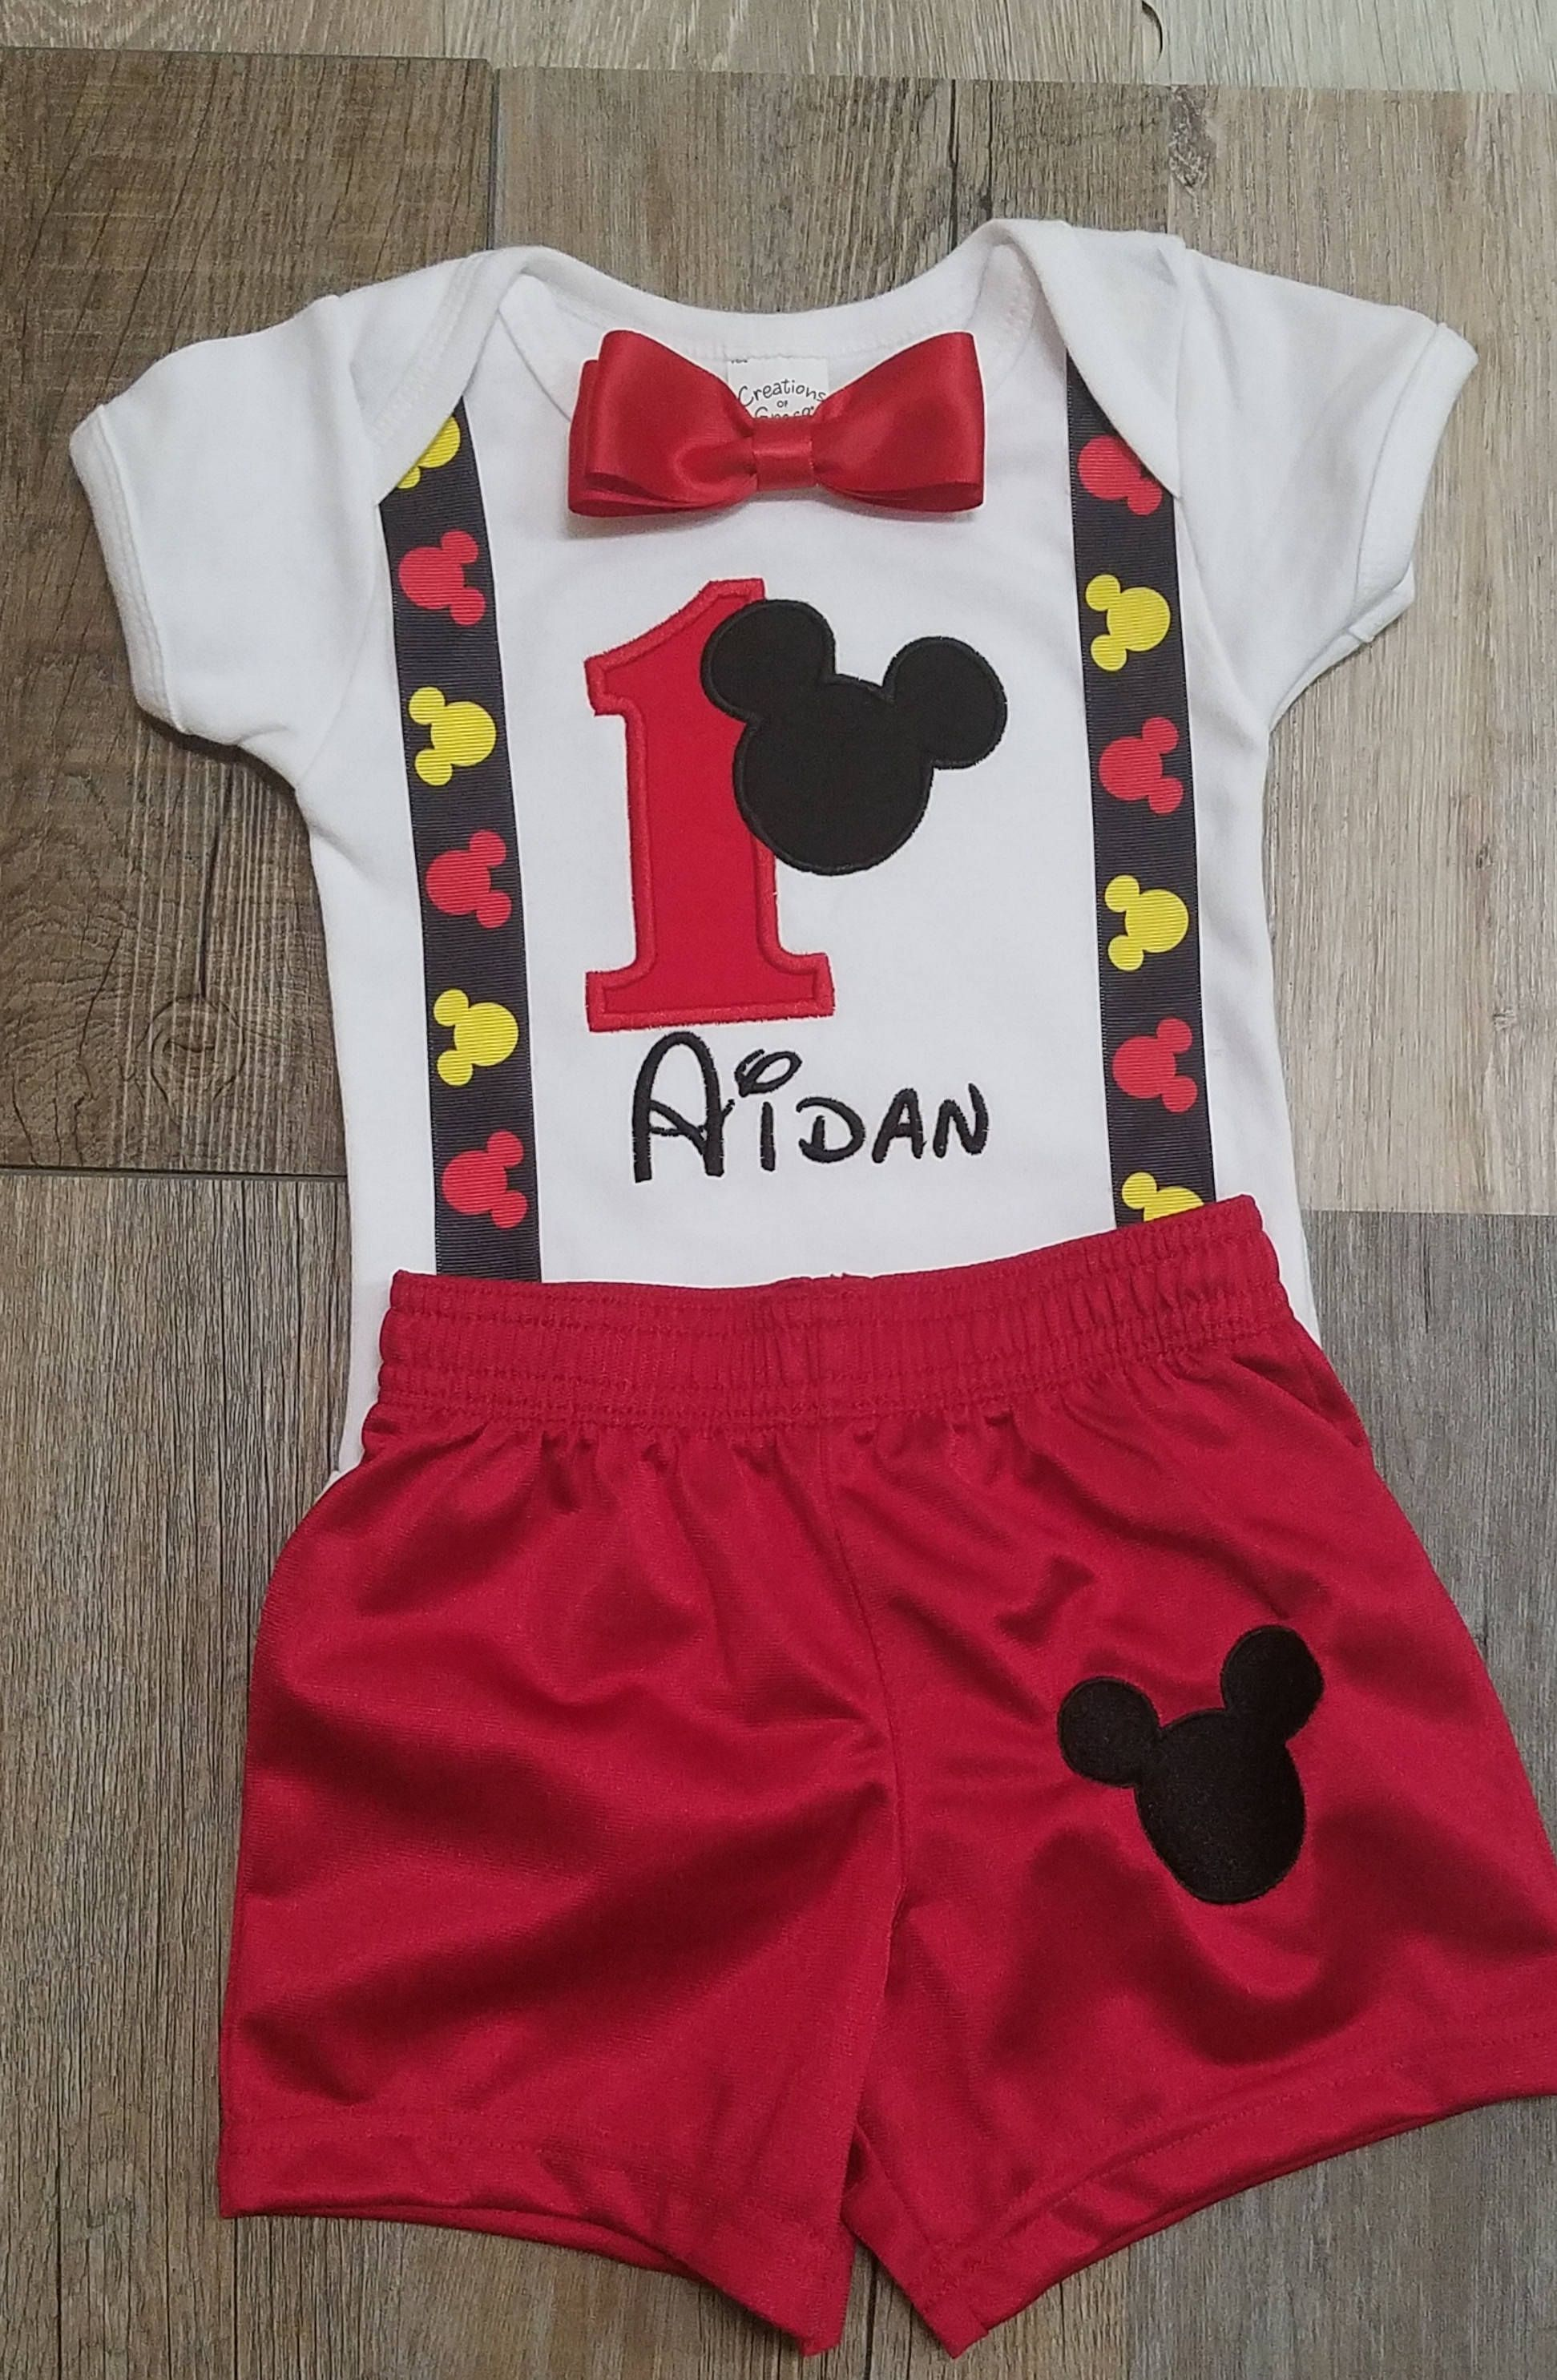 1st birthday boy outfit Mickey Mouse birthday outfit cake smash boy Birthday outfit for boy personalized, boys birthday set Mickey birthday